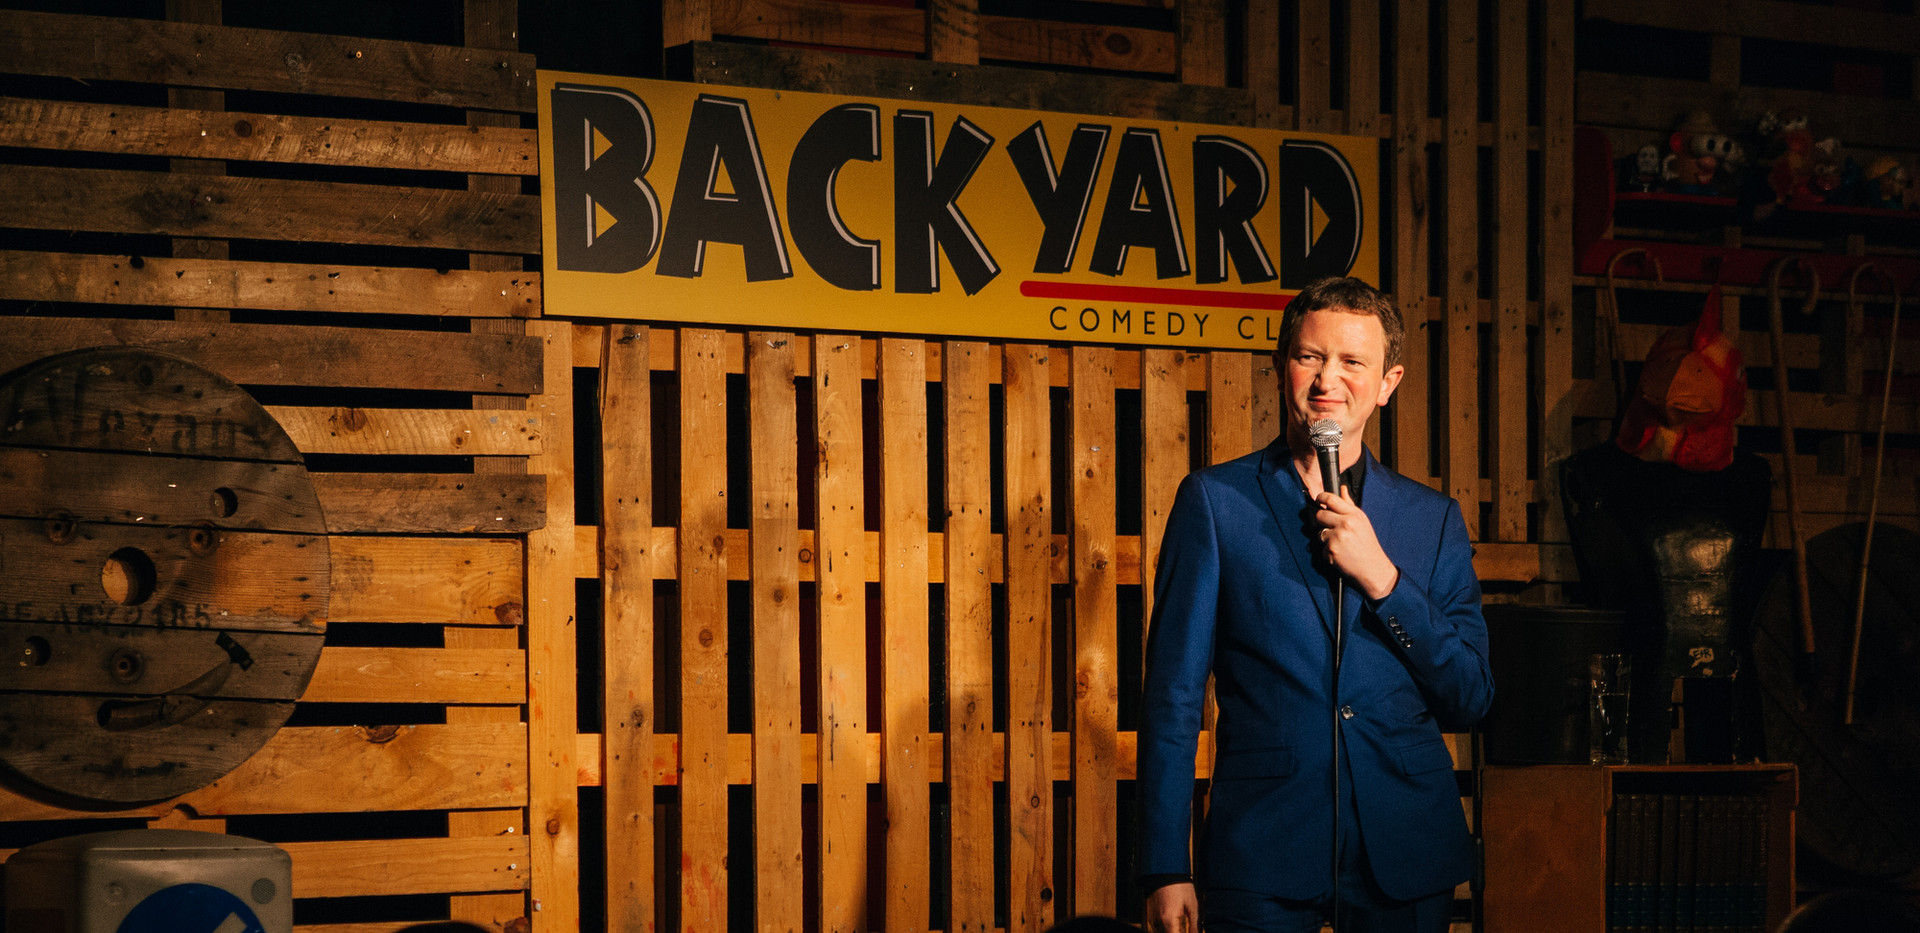 Live at Backyard Comedy Club